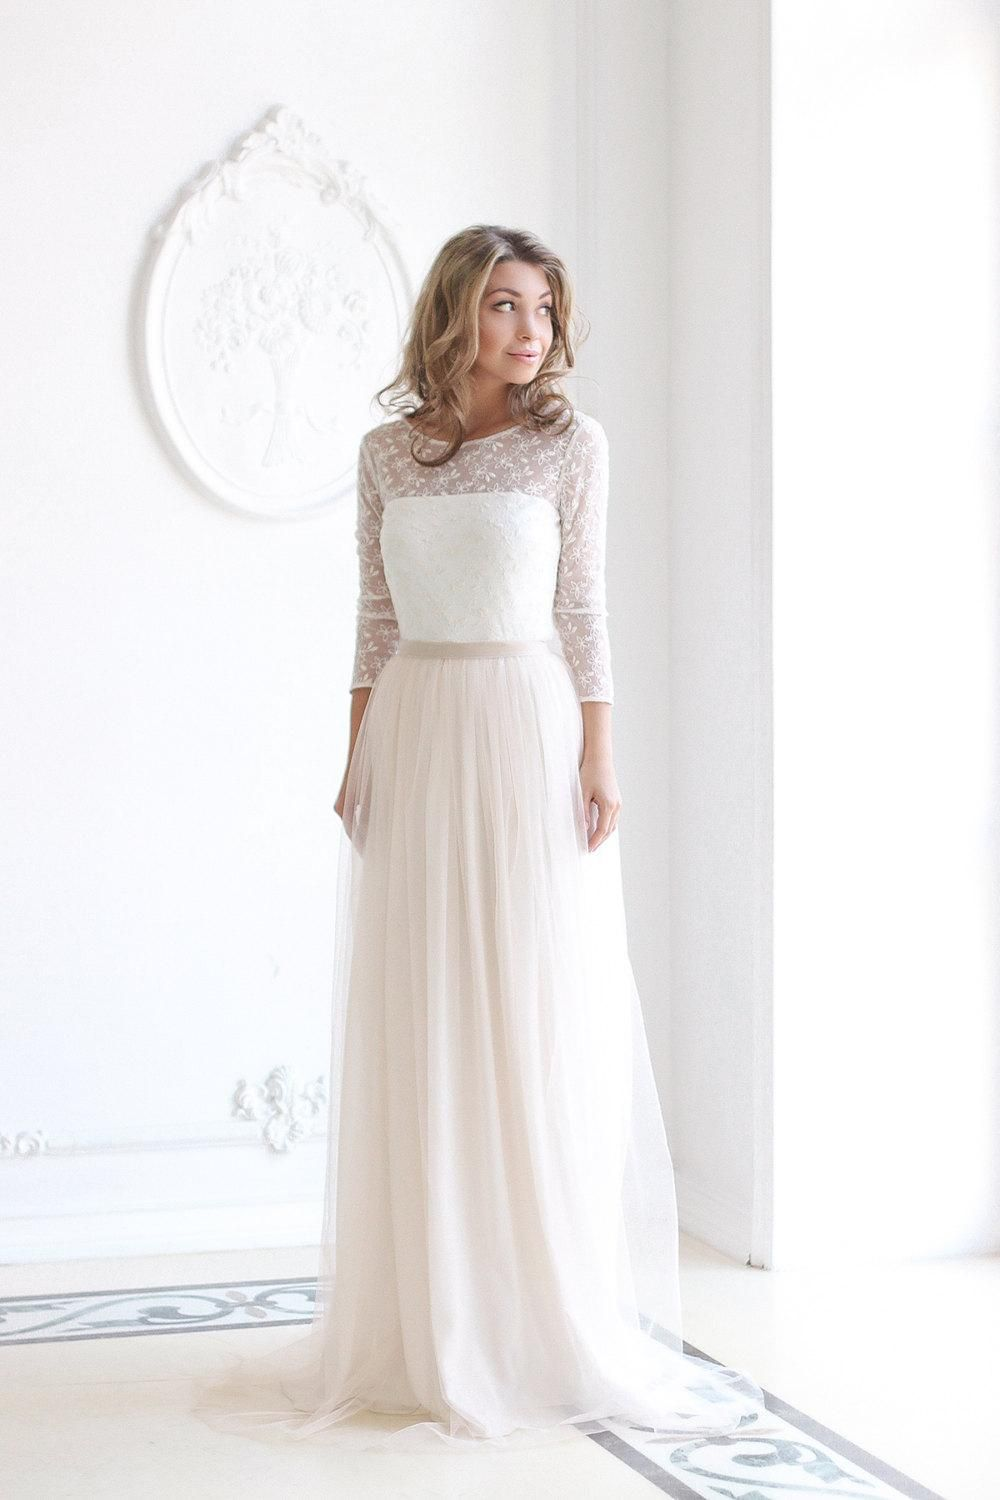 Impressive and stunning, the dress features a remarkable